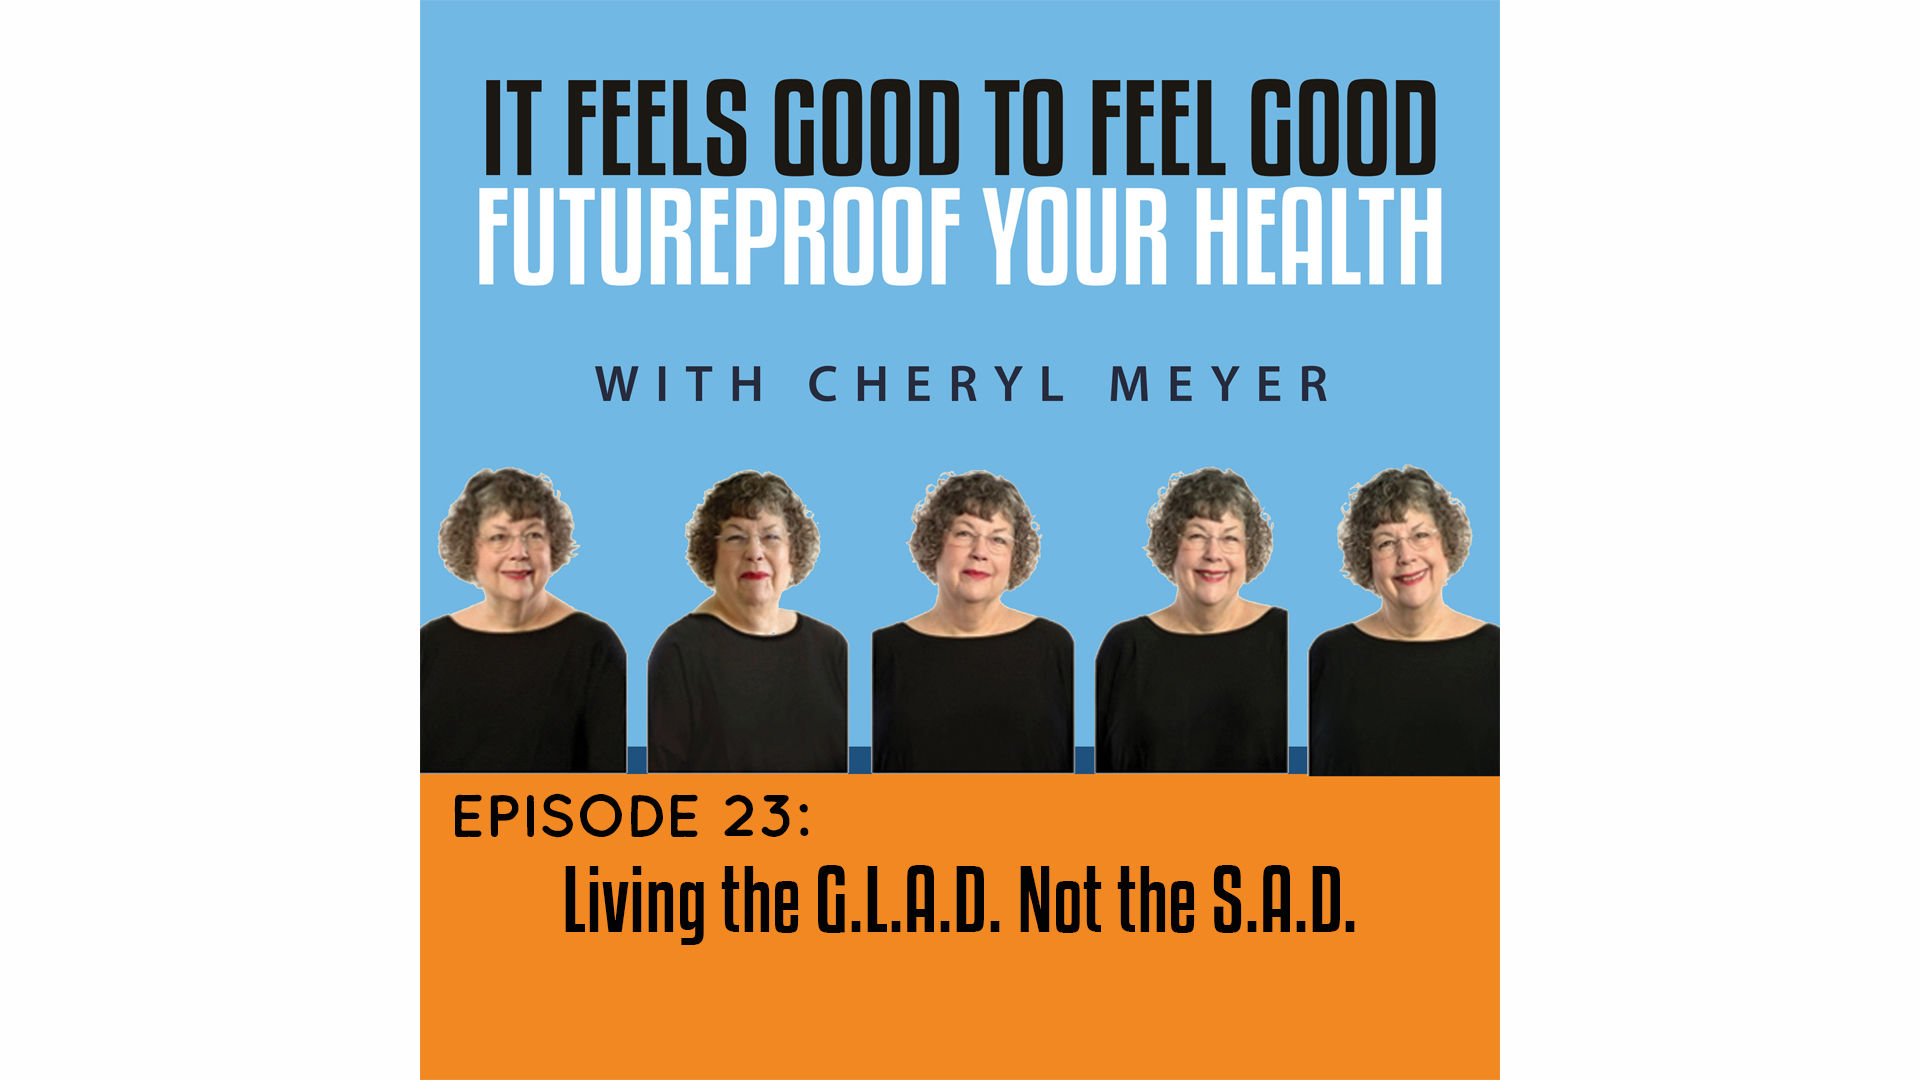 Episode 23, Living the GLAD not the SAD